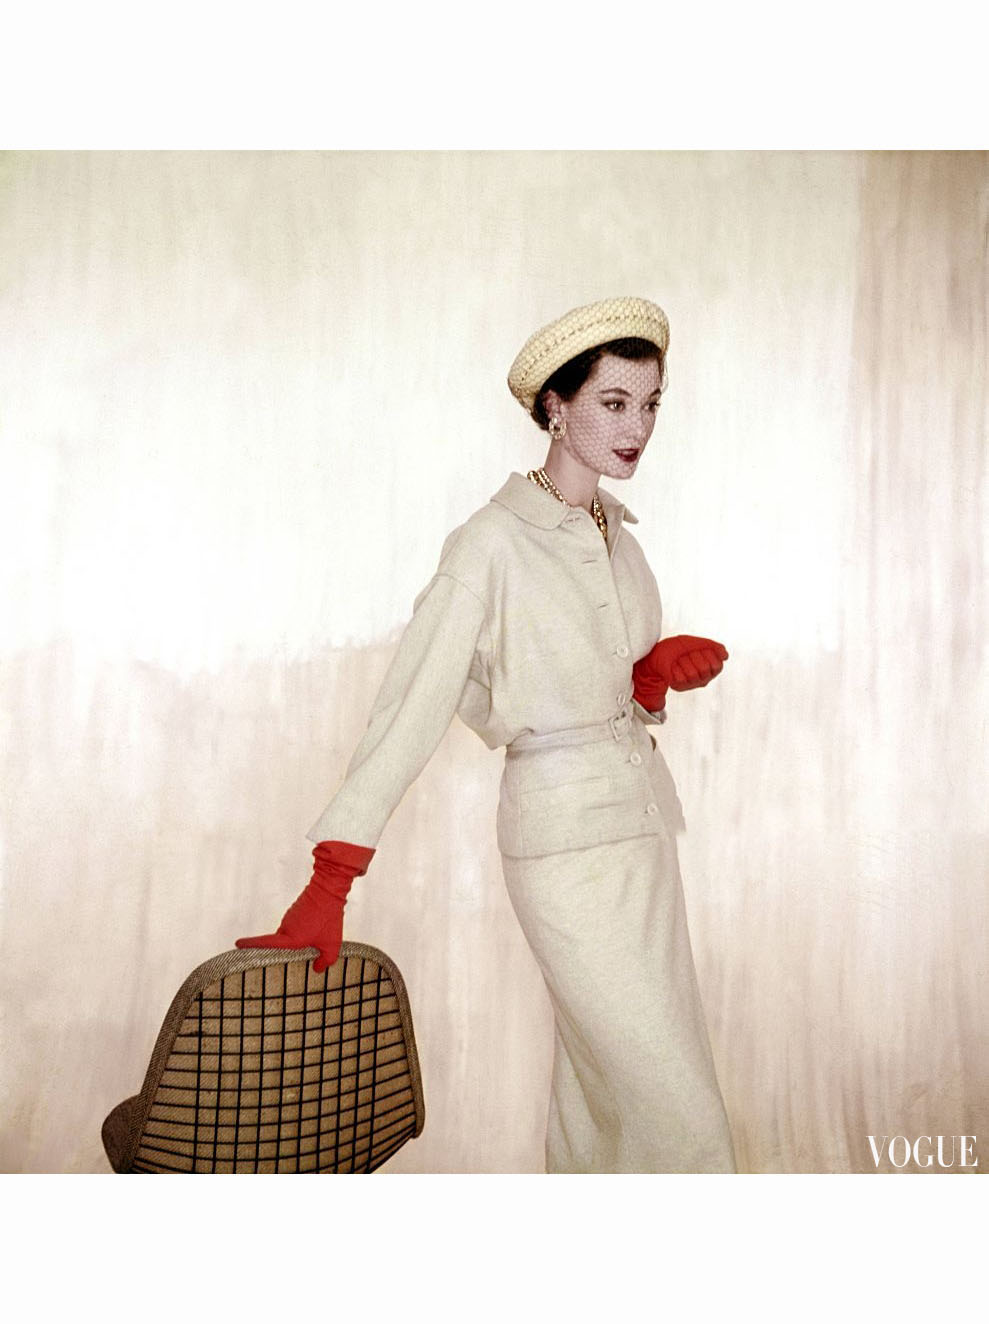 clifford coffin © pleasurephoto pagina 3 barbara mullen wearing beige suit and blouse of wool and rabbit s hair by